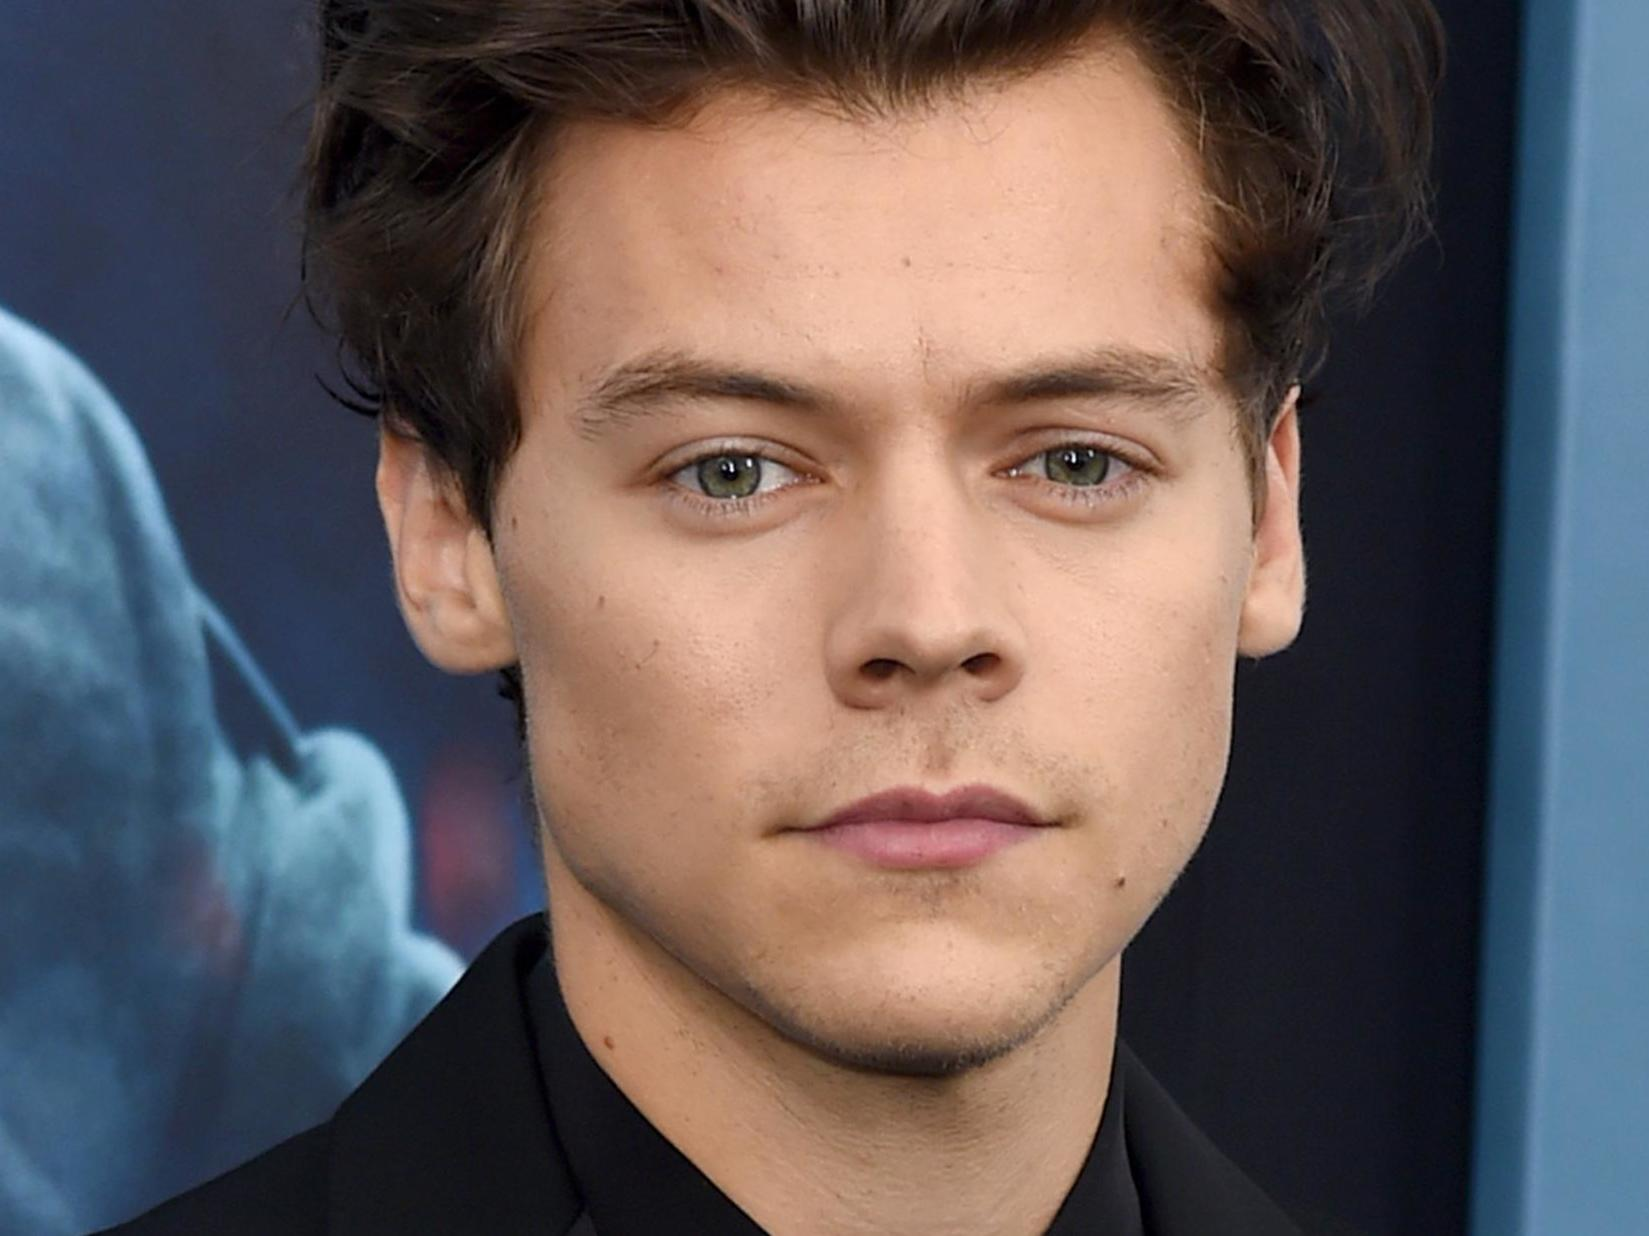 Harry Styles 'robbed at knifepoint'